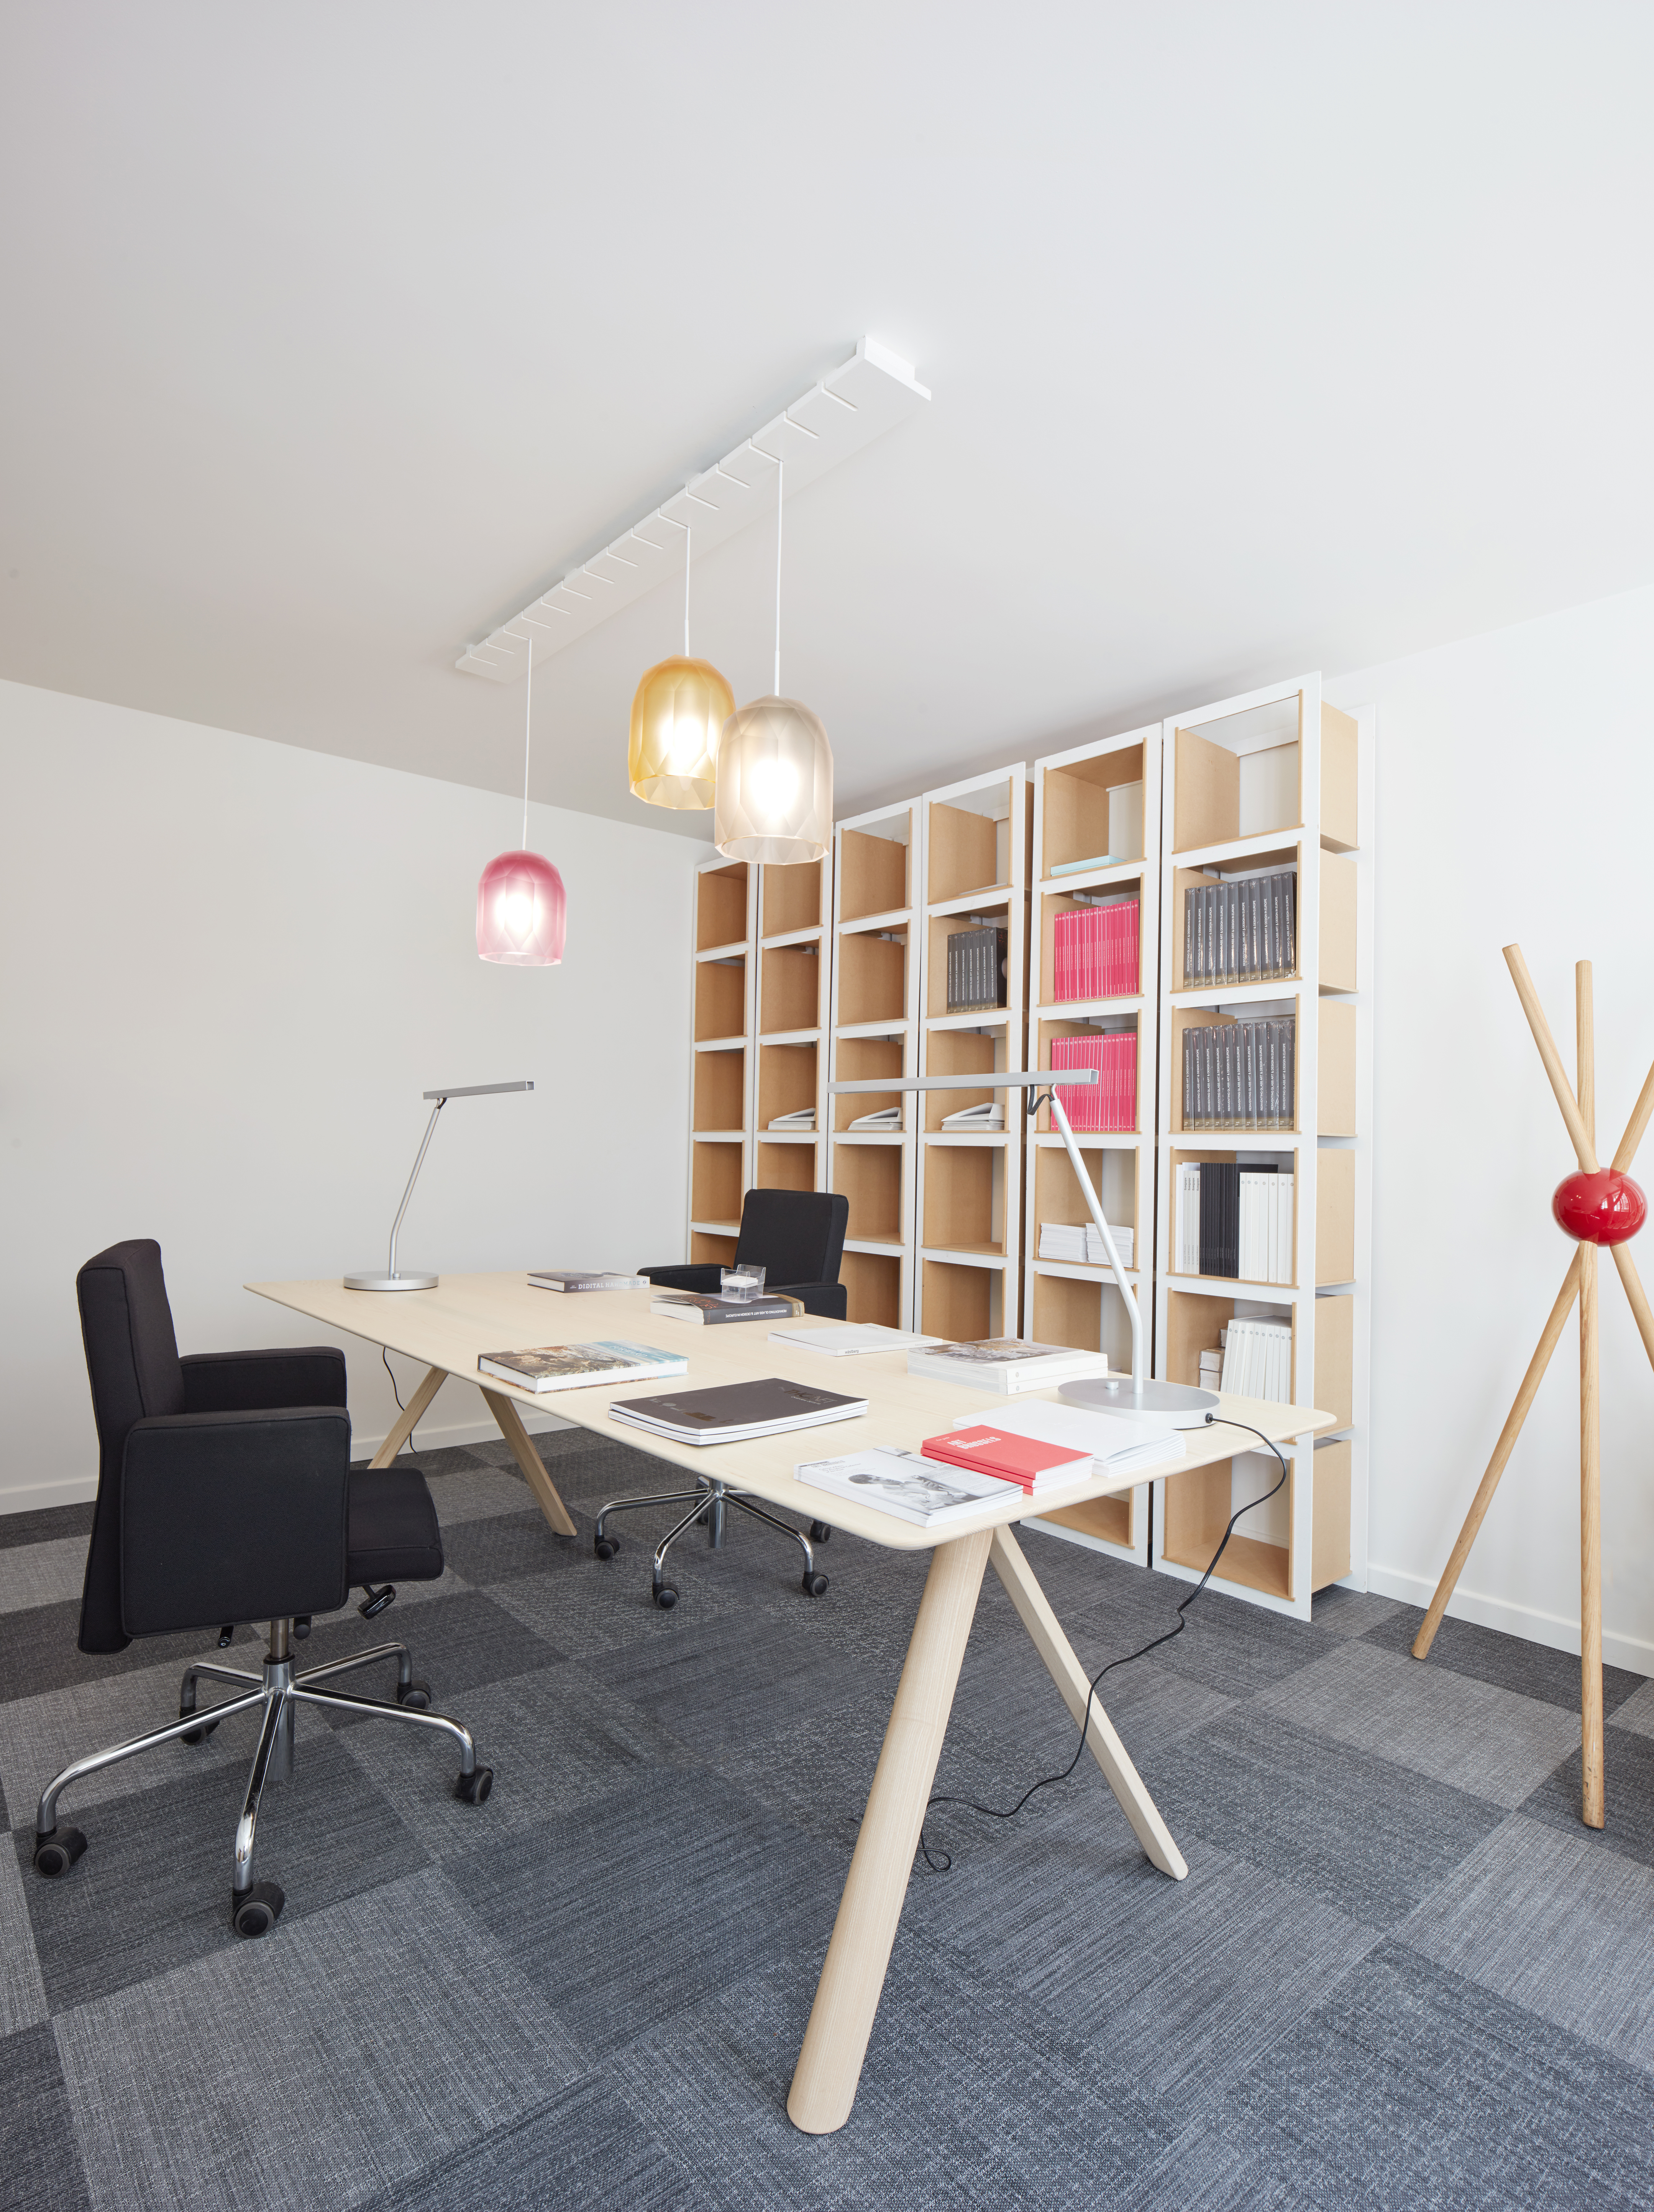 Pro Materia & TLmag Office in Brussels, photo by Jörg Bräuer, Courtesy Piano Nobile Applied Arts